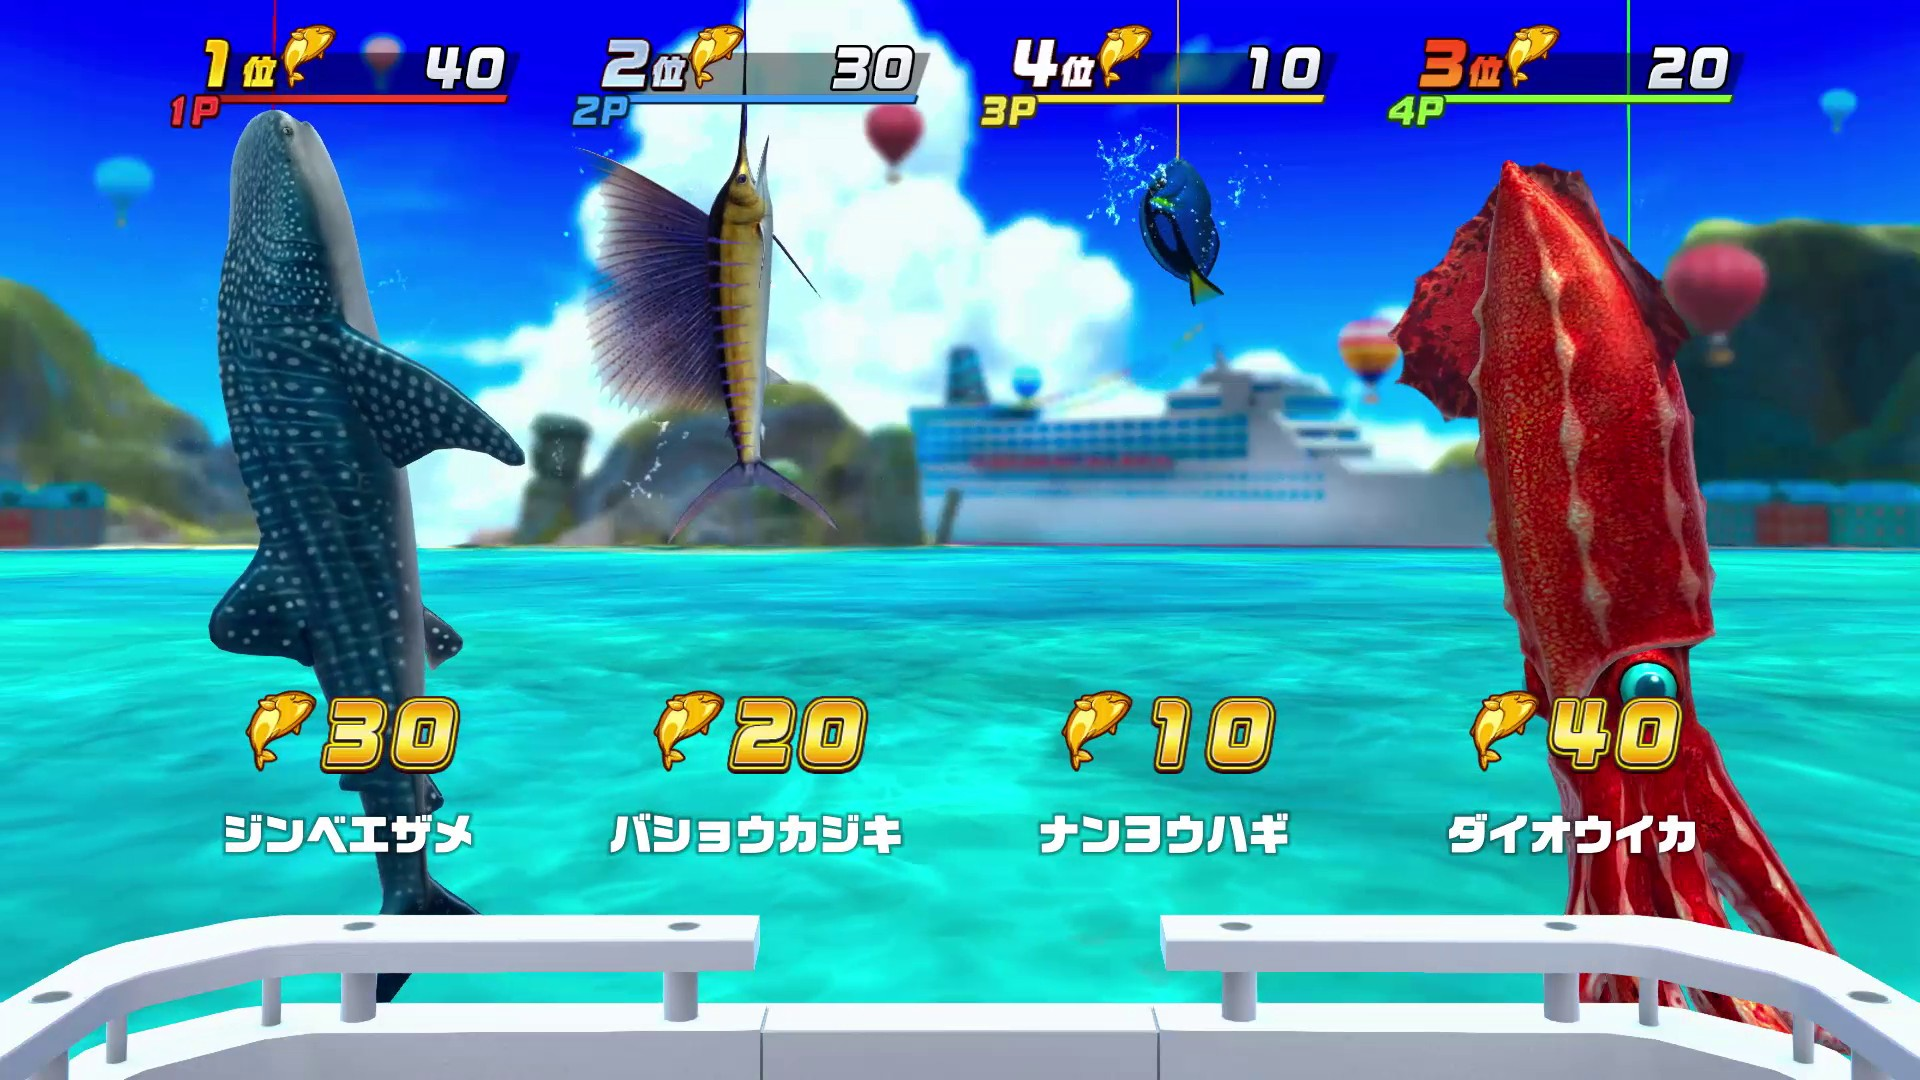 Fishing Spirits: Switch Version hits 500k sold, new promo video and screens shared